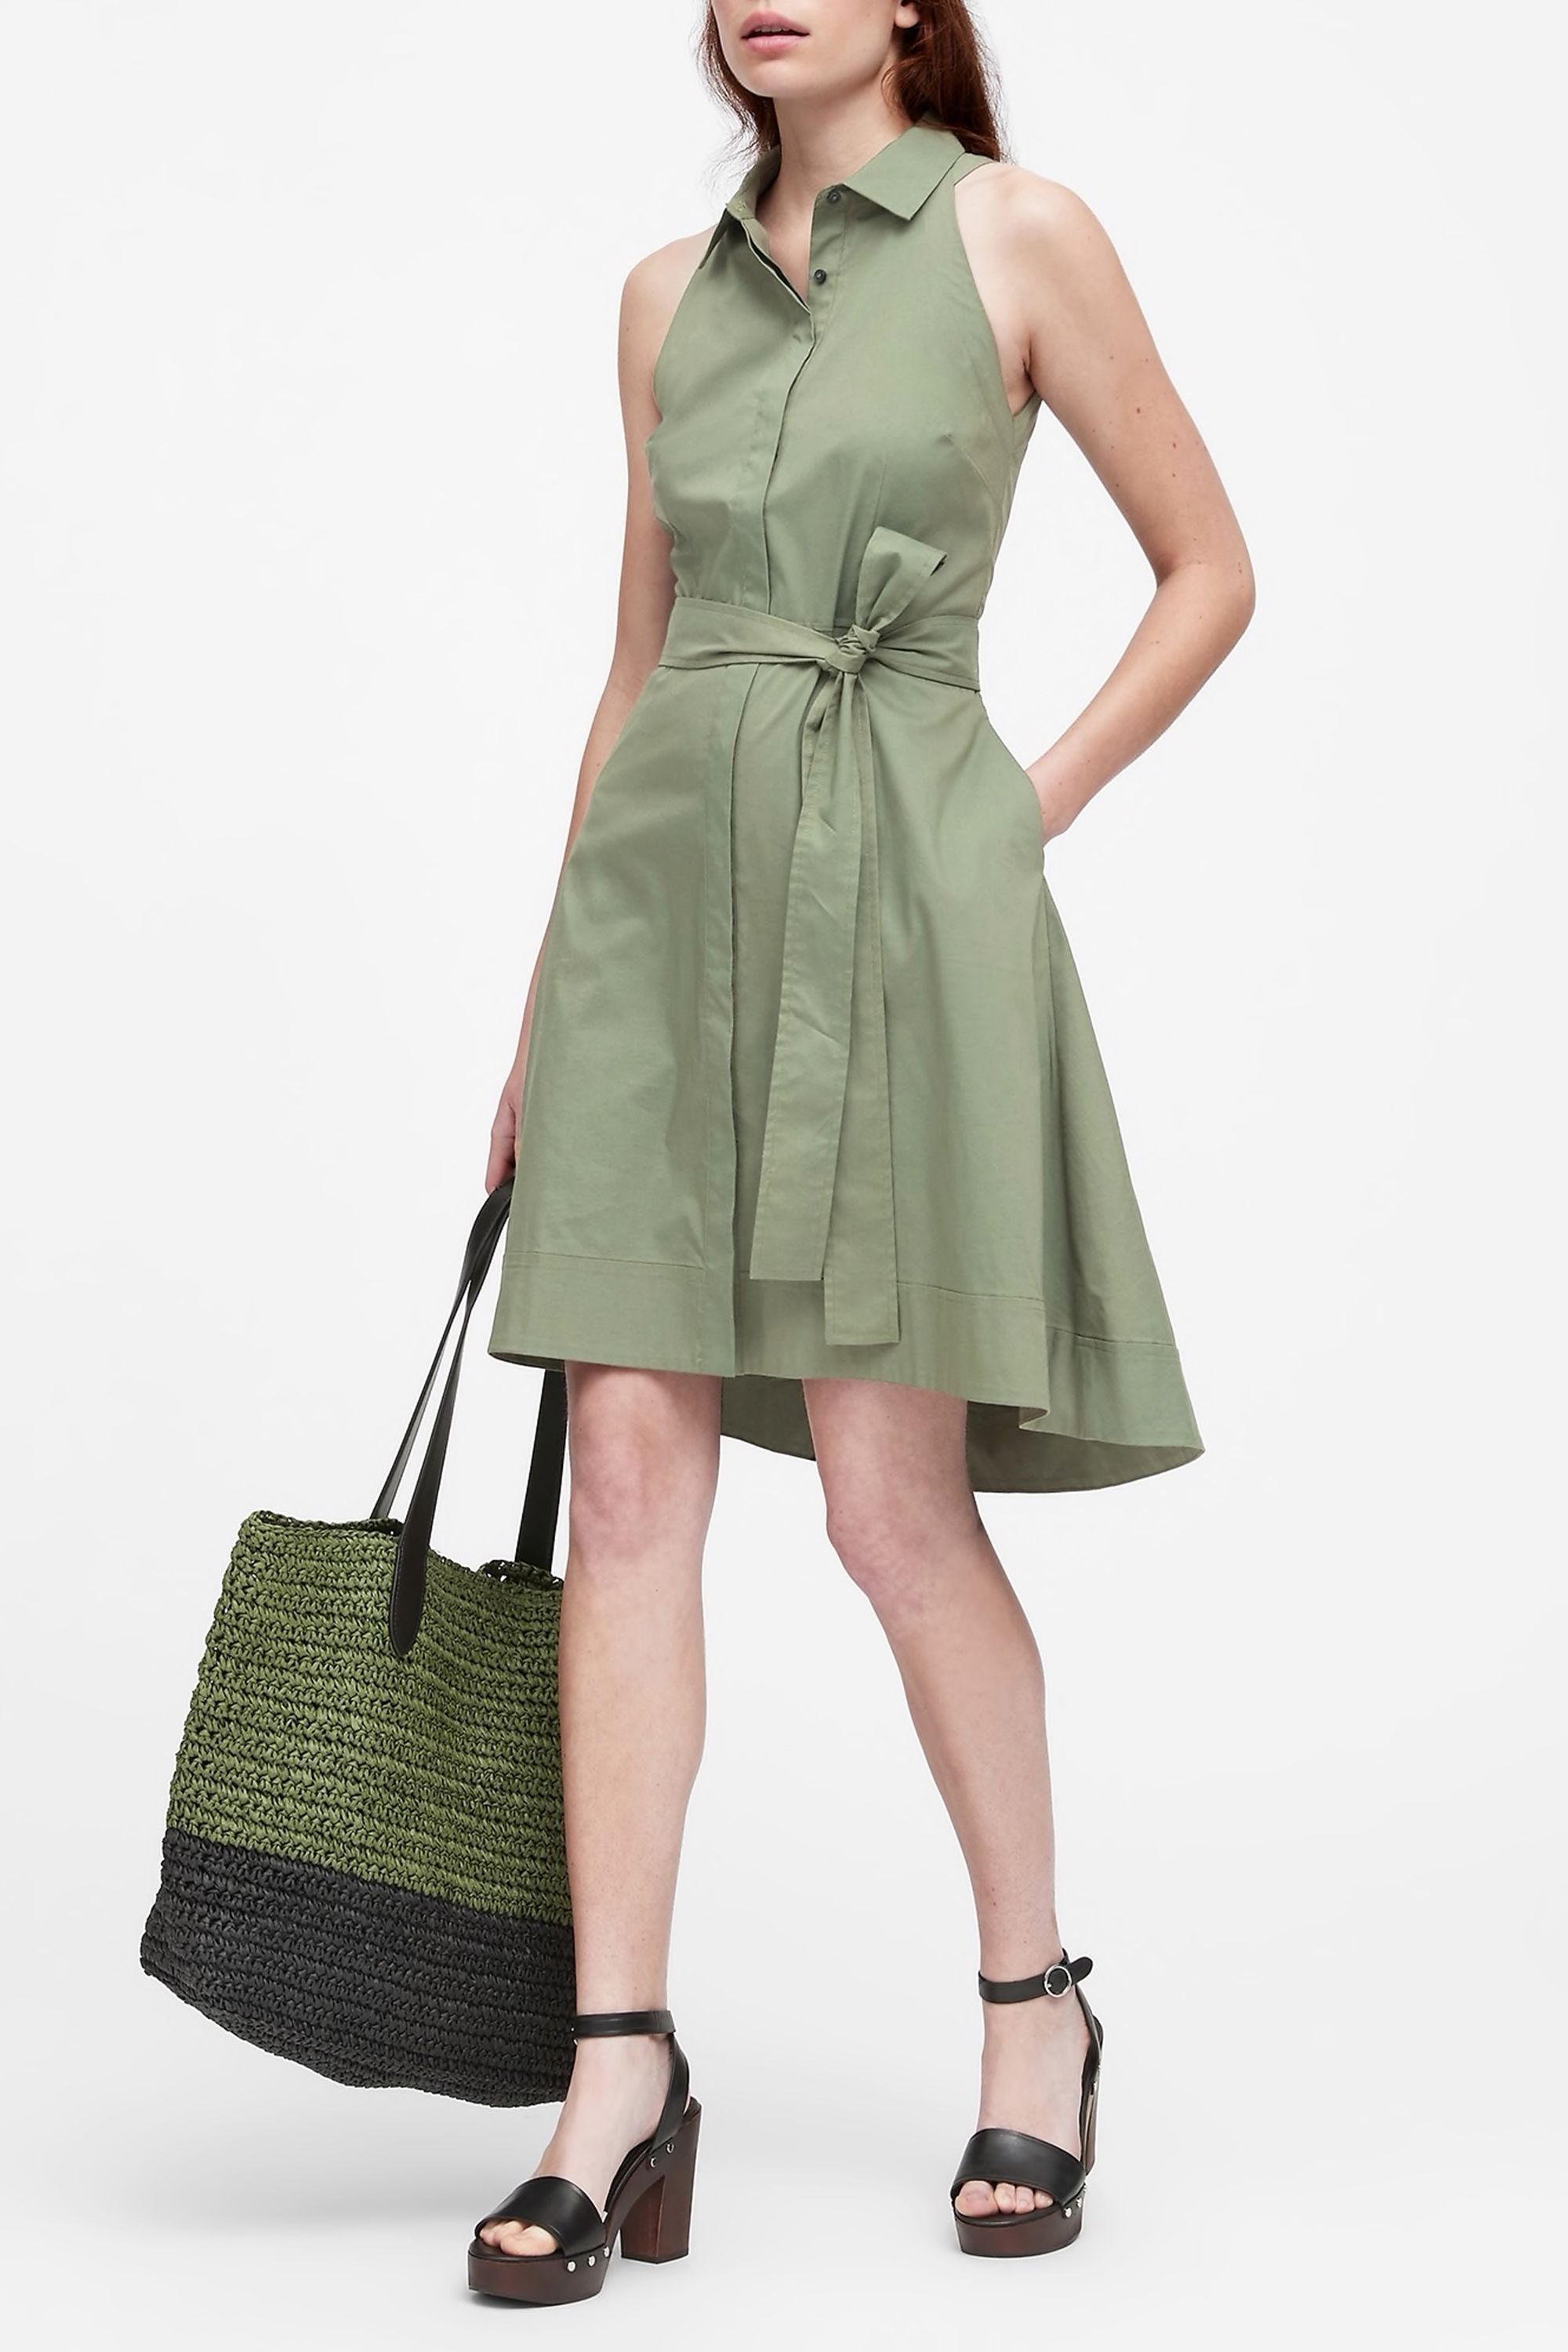 High-Low Shirt Dress Banana Republic bananarepublic.gap.com $98.50 SHOP NOW This is a shirtdress that can be worn from the boardroom to a BBQ on a Summer Friday. Make it work for the weekend with a straw tote and summer clogs.